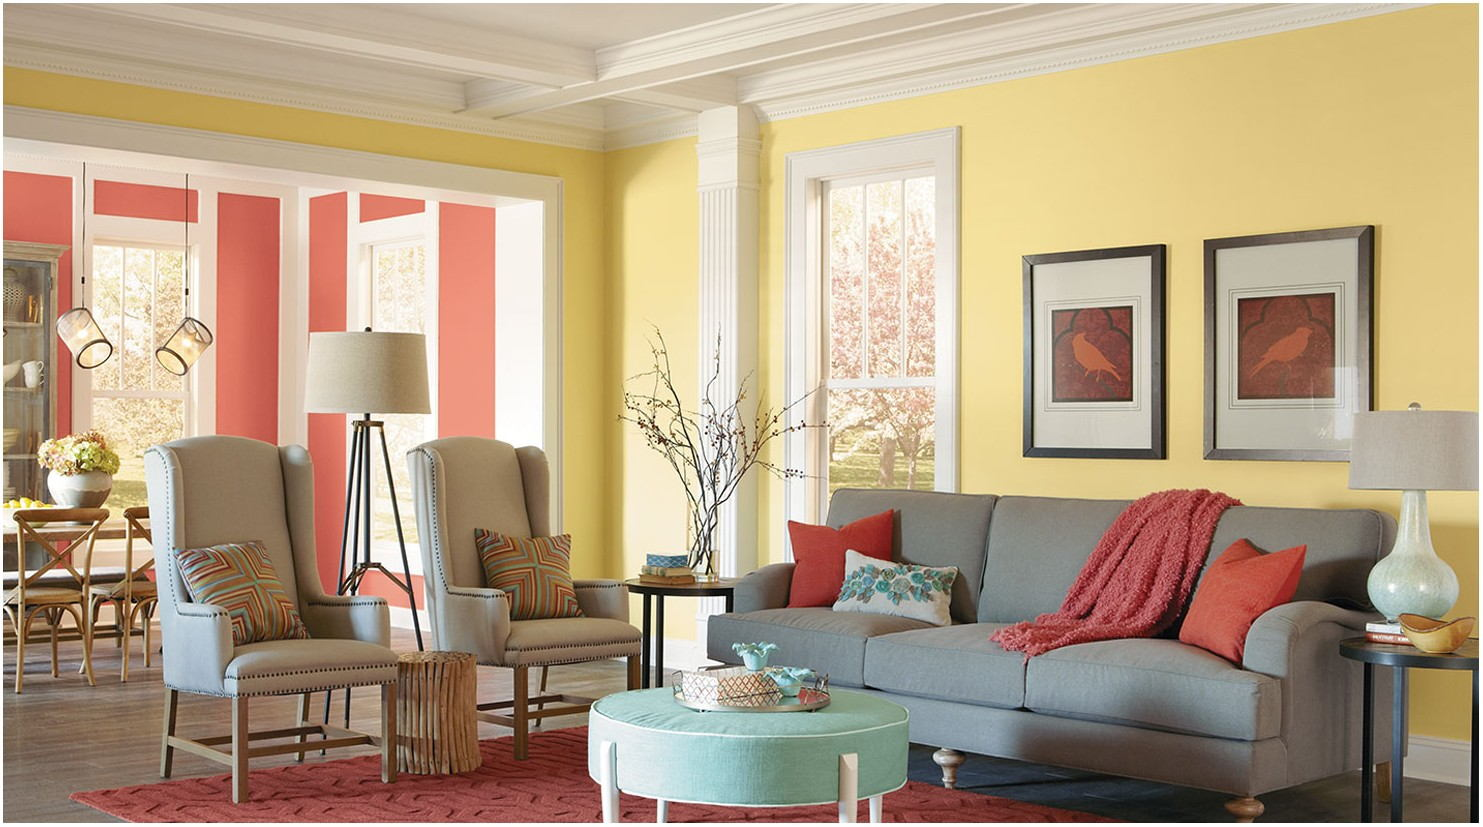 Interior Of A Living Room With Pictures